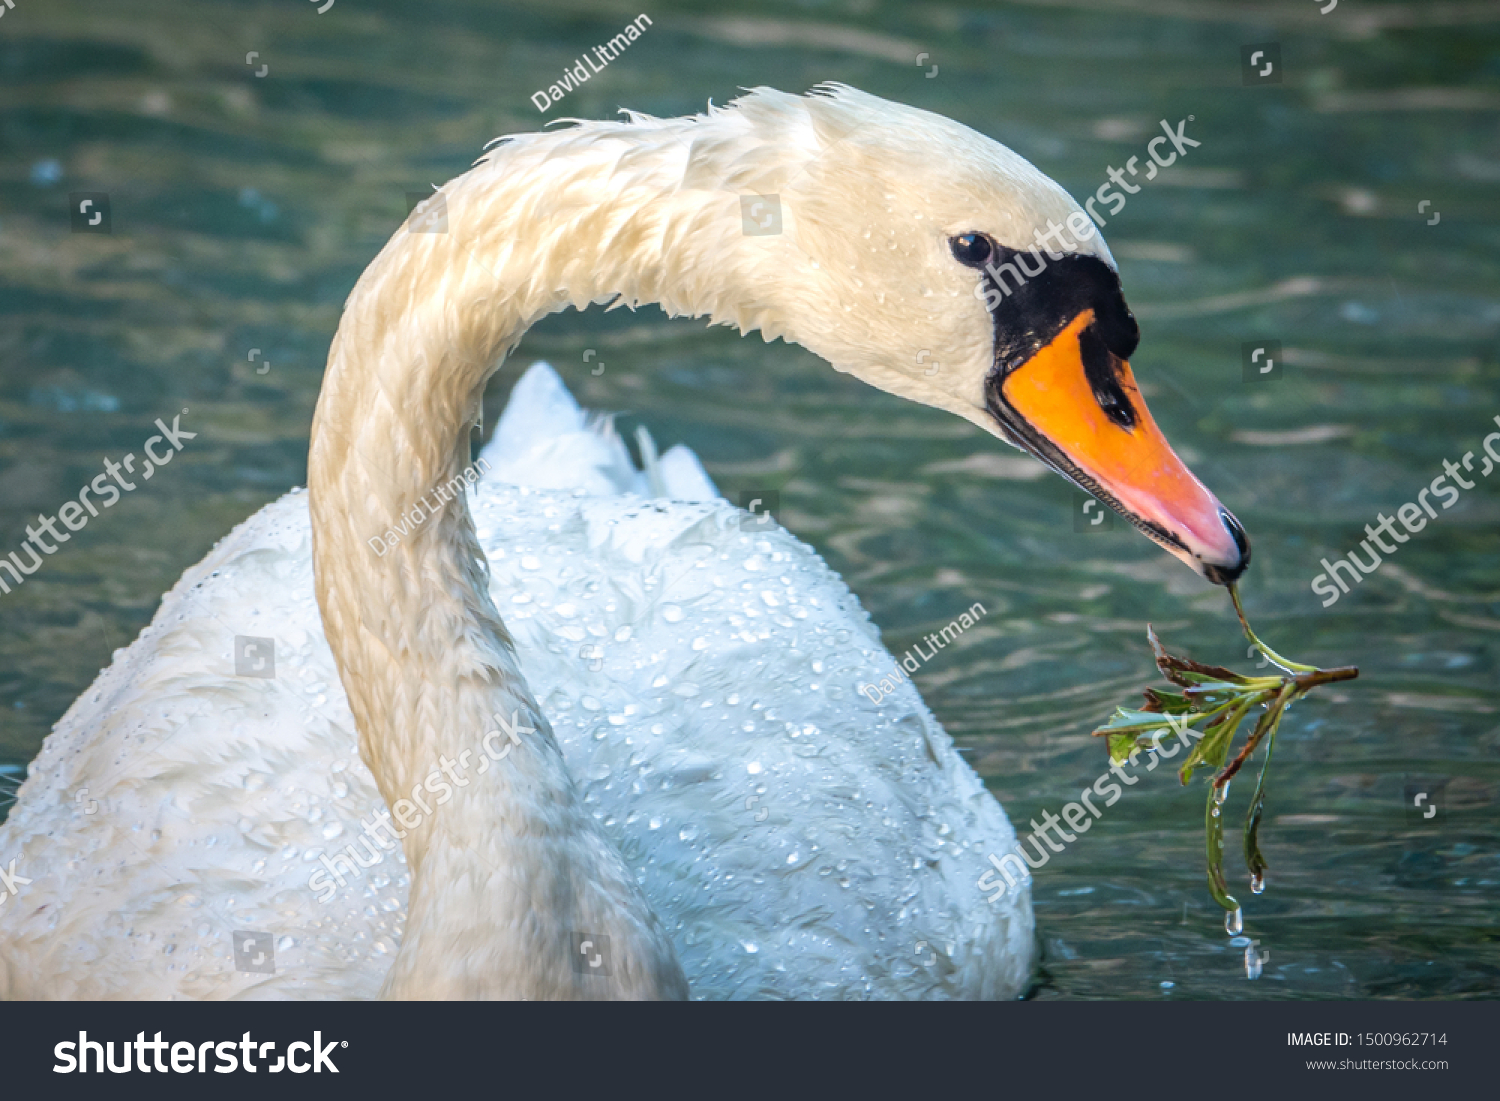 Close up portrait of a Swan as it eats a plant plucked from the bottom of a pond in Northern California.